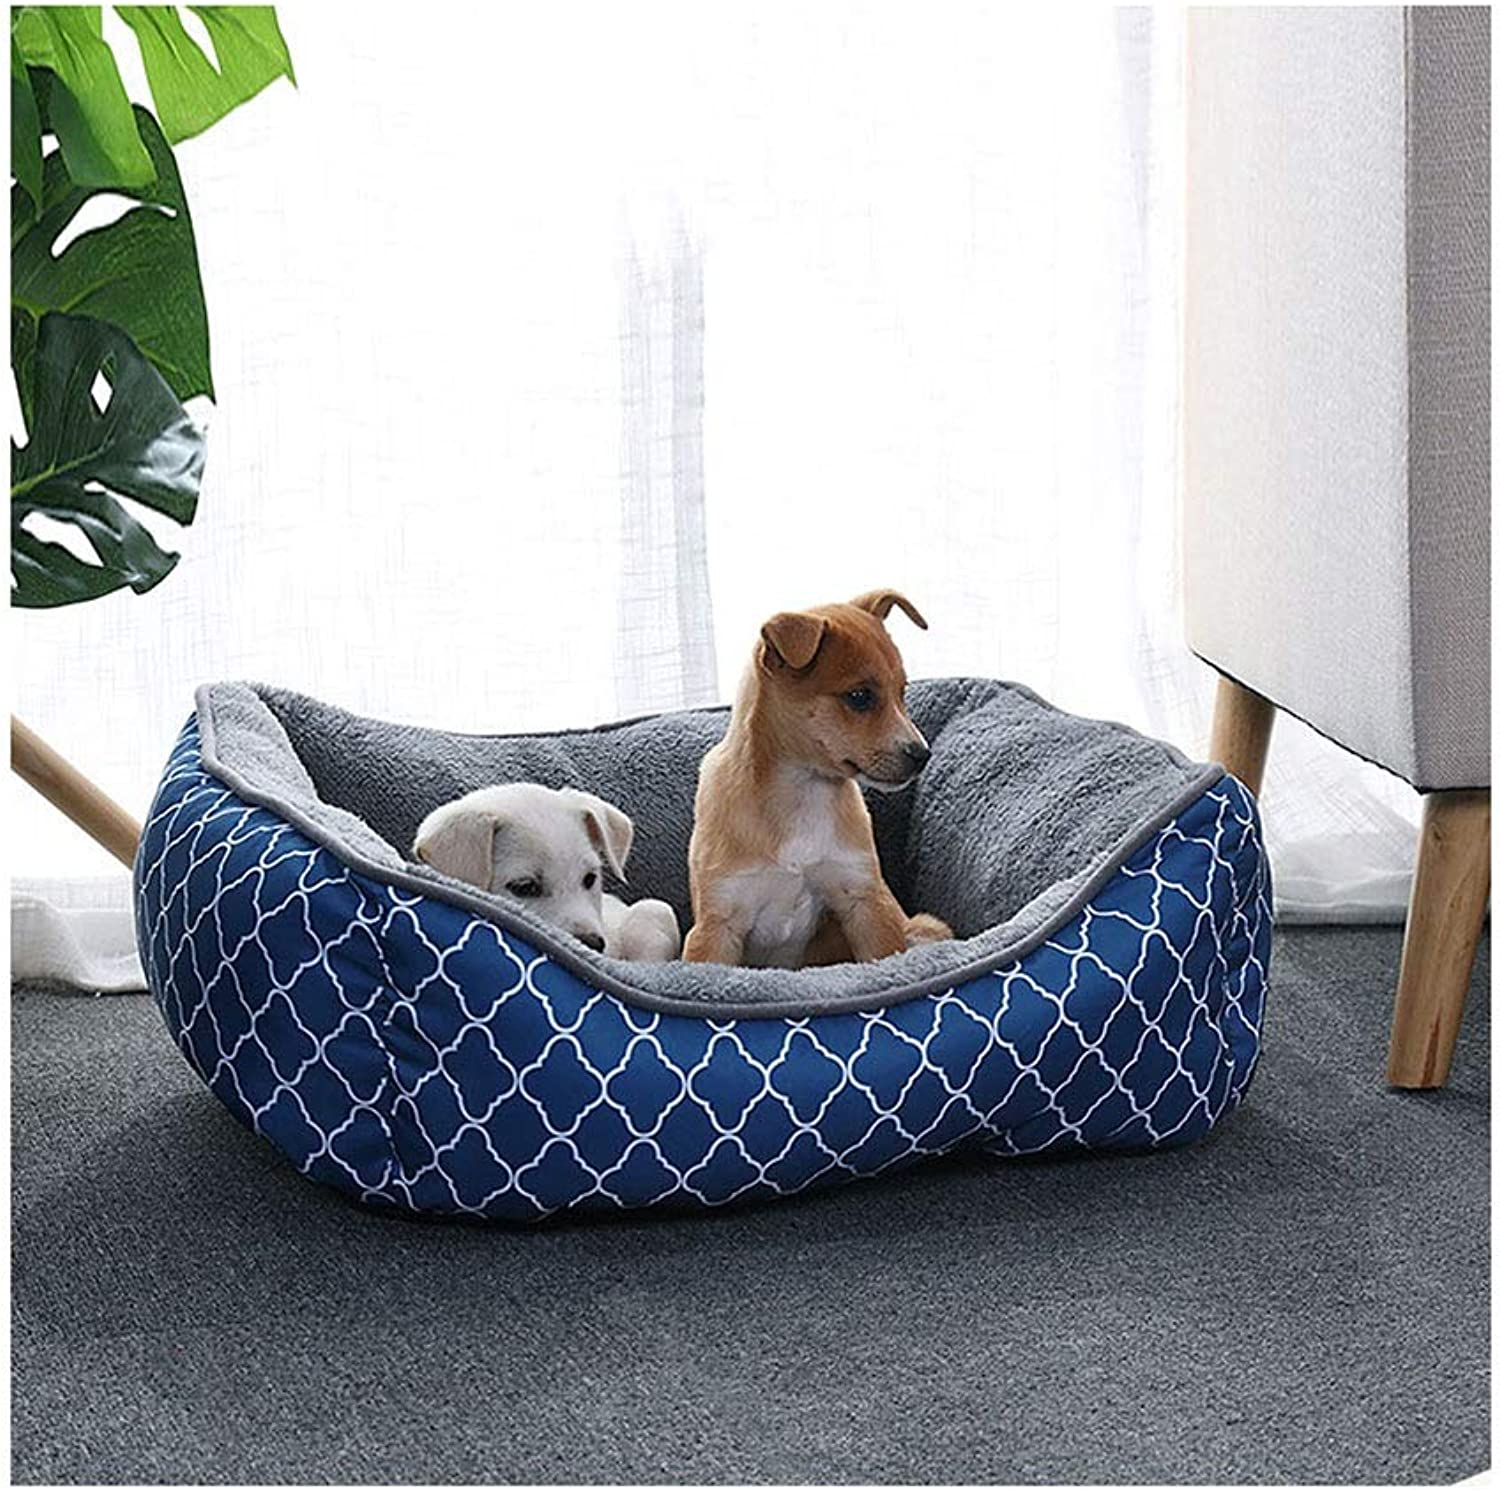 DSADDSD Pet Dog Bed Cat Nest Kennel Comfortable Mat For Small Medium Large Dogs Durable Nonslip Pet Supplies (color   2 , Size   60cm48cm20cm)